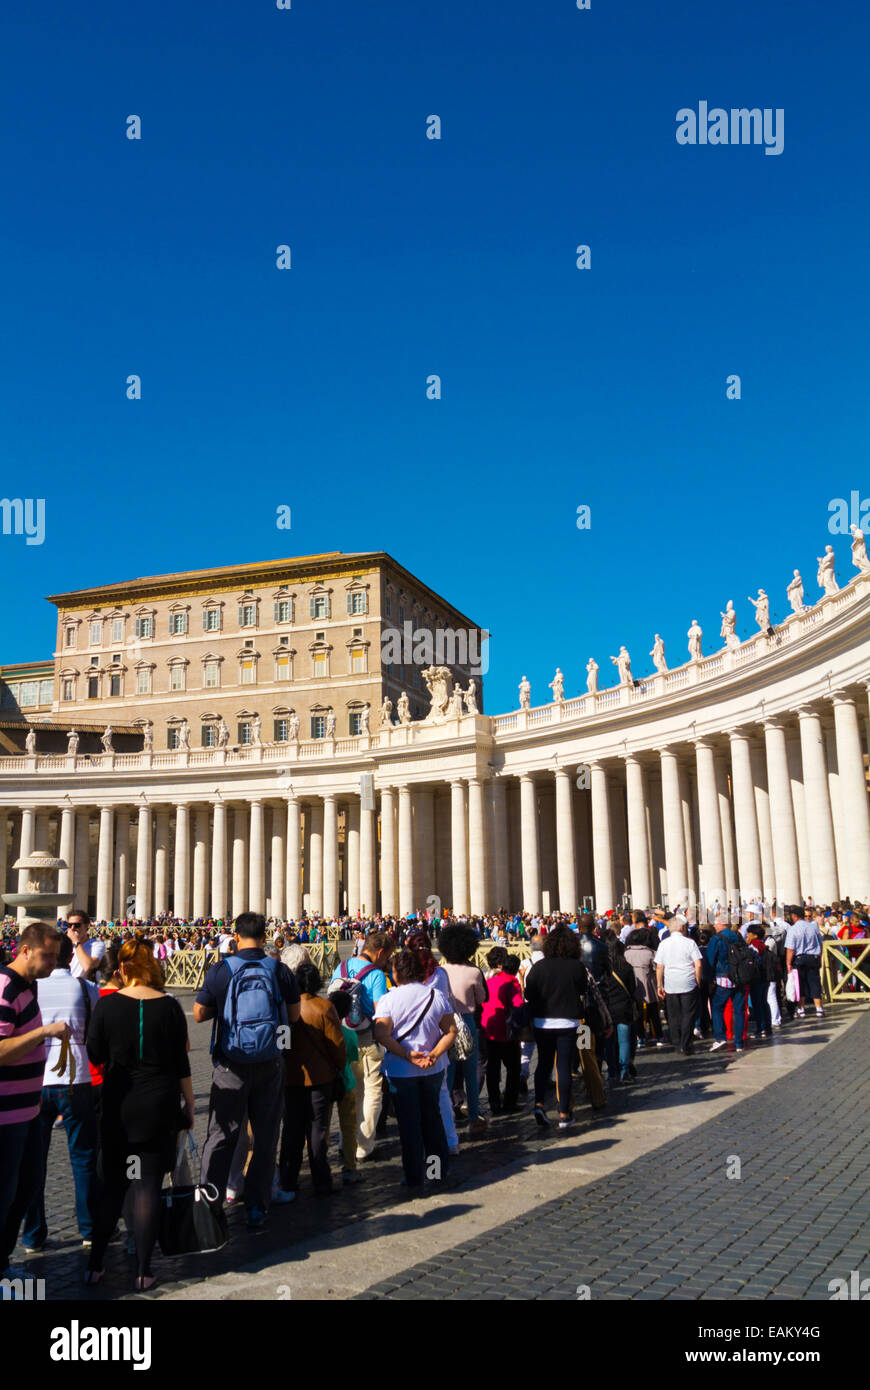 Queue to St Peter's Basilica, Piazza San Pietro, St Peter's square, the Vatican, Rome, Italy - Stock Image